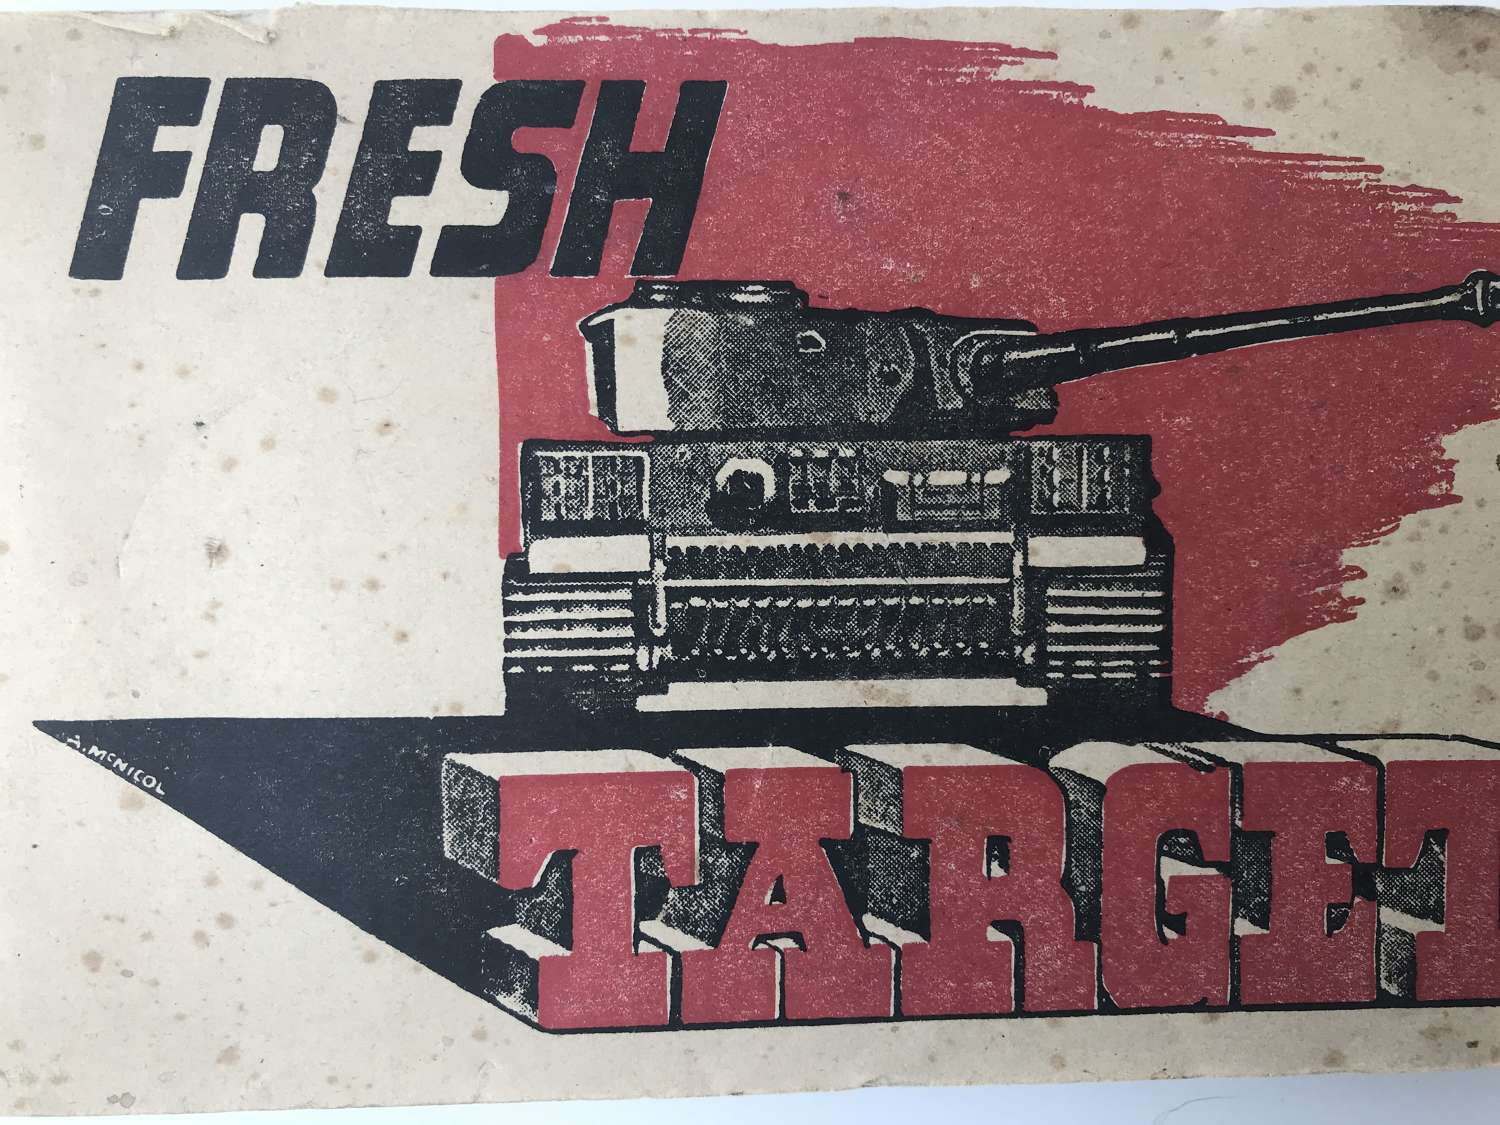 (Fresh target) British army booklet on axis equipment dated 1943